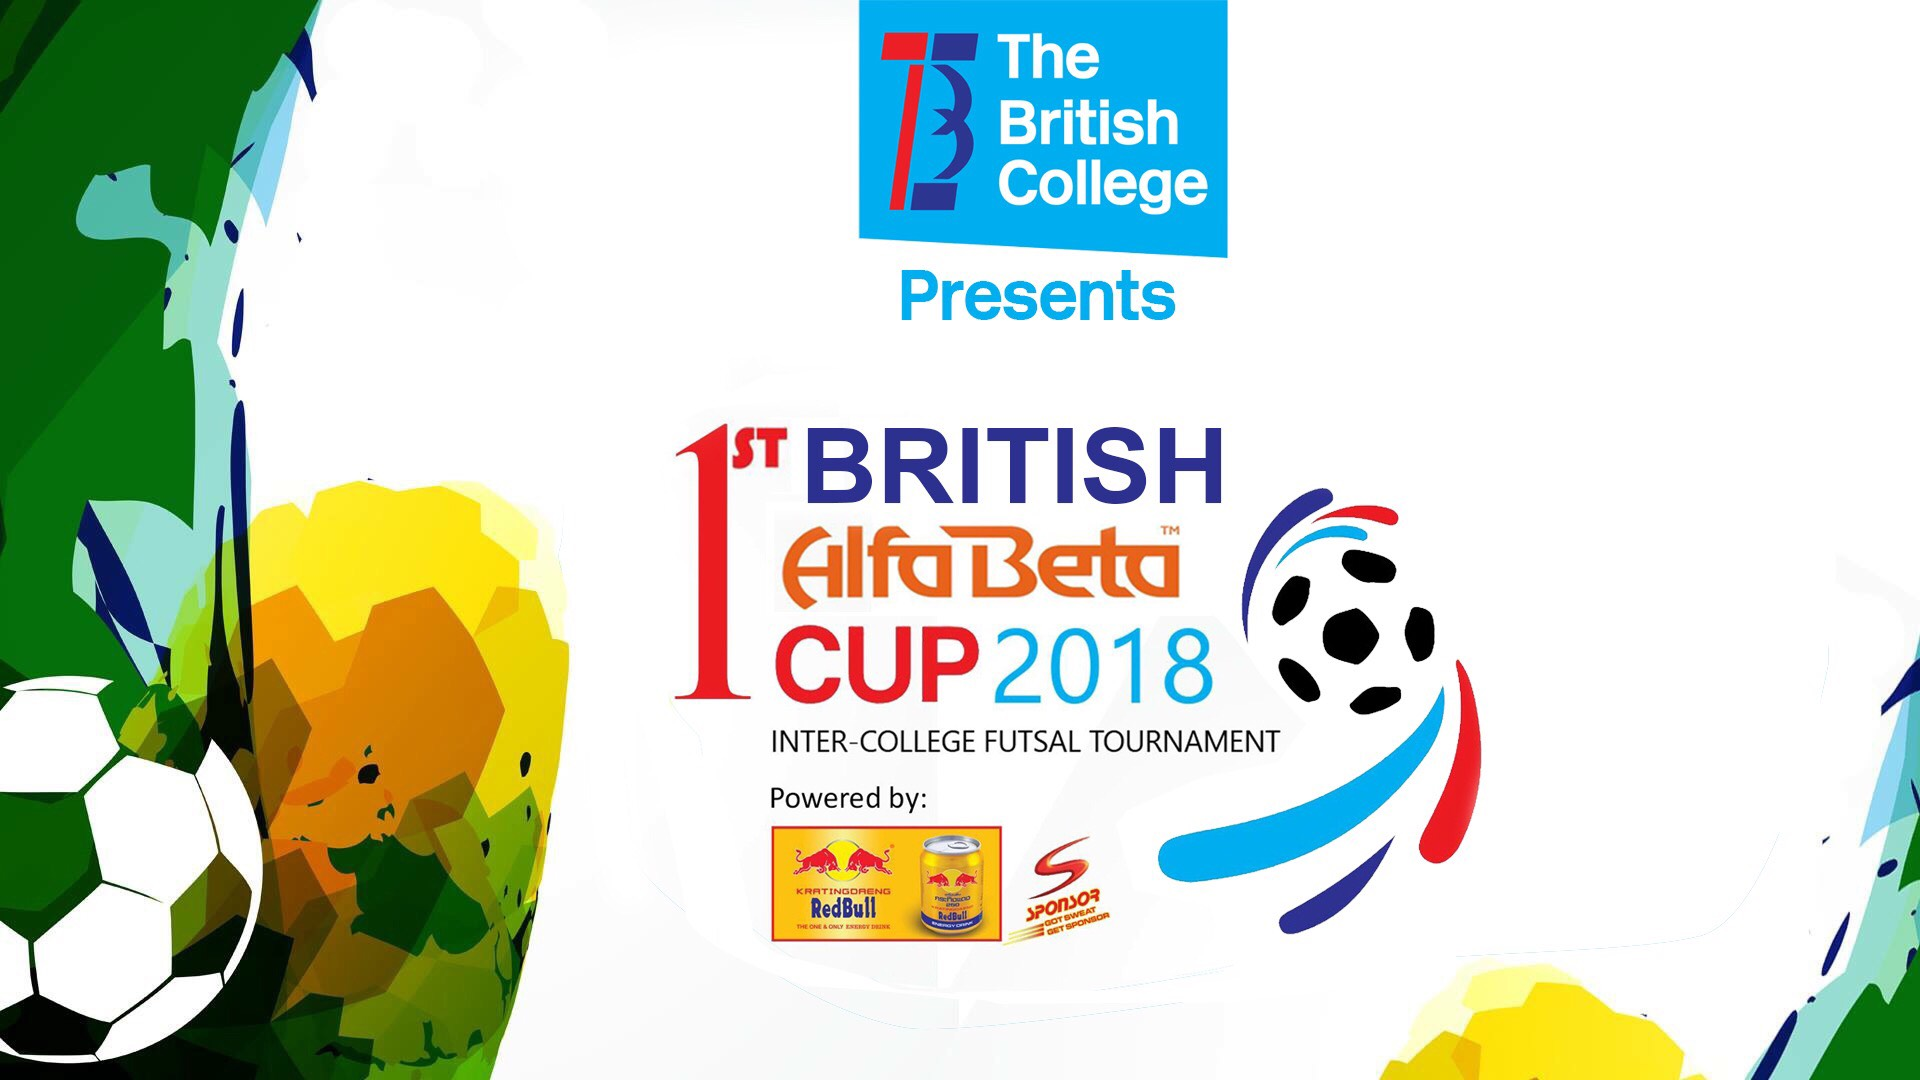 British Alfa Beta Cup 2018: Inter College Futsal Tournament